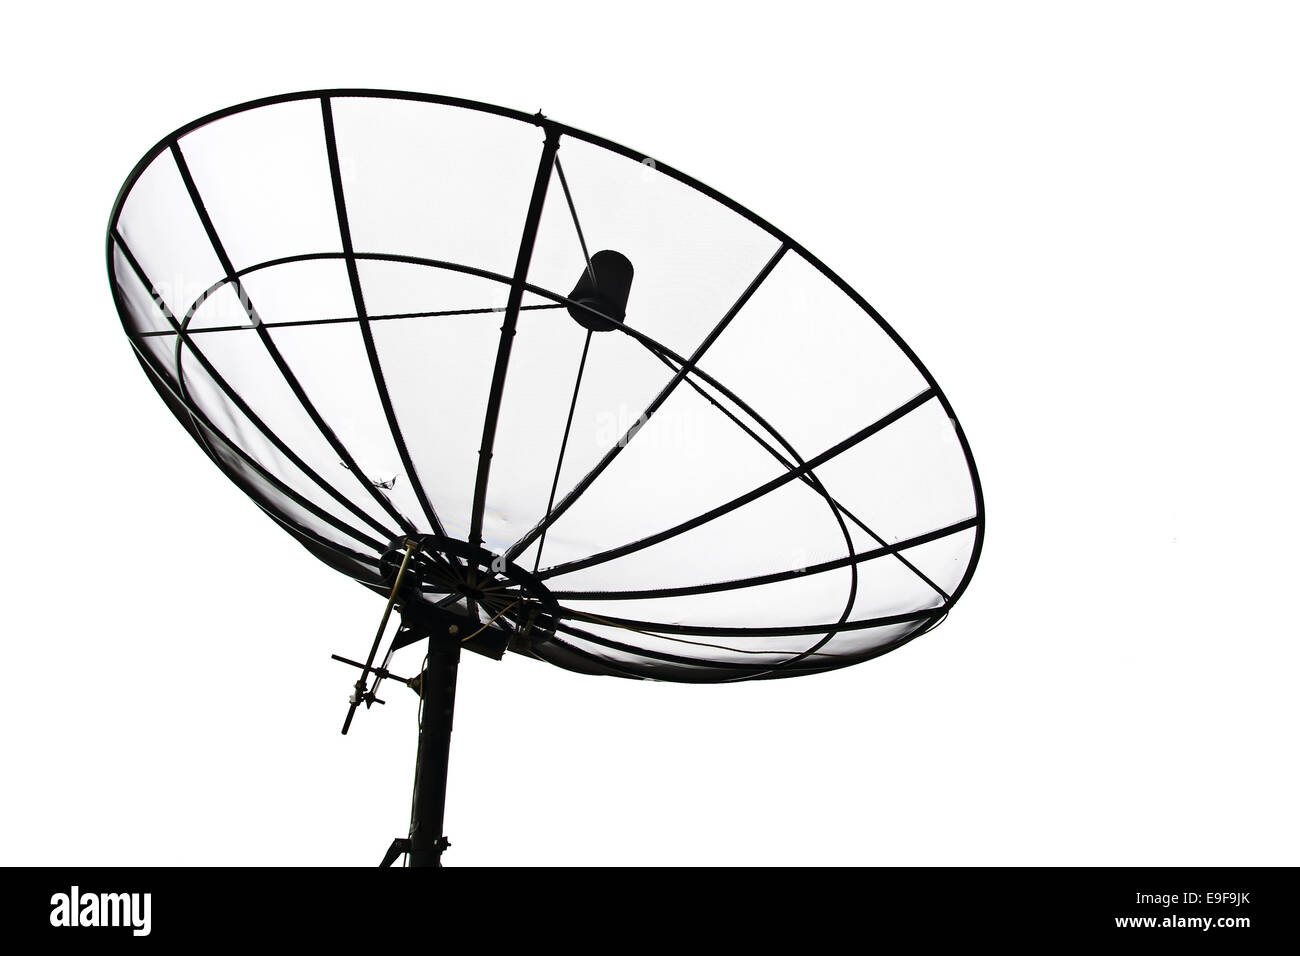 Satellite Dish - Stock Image